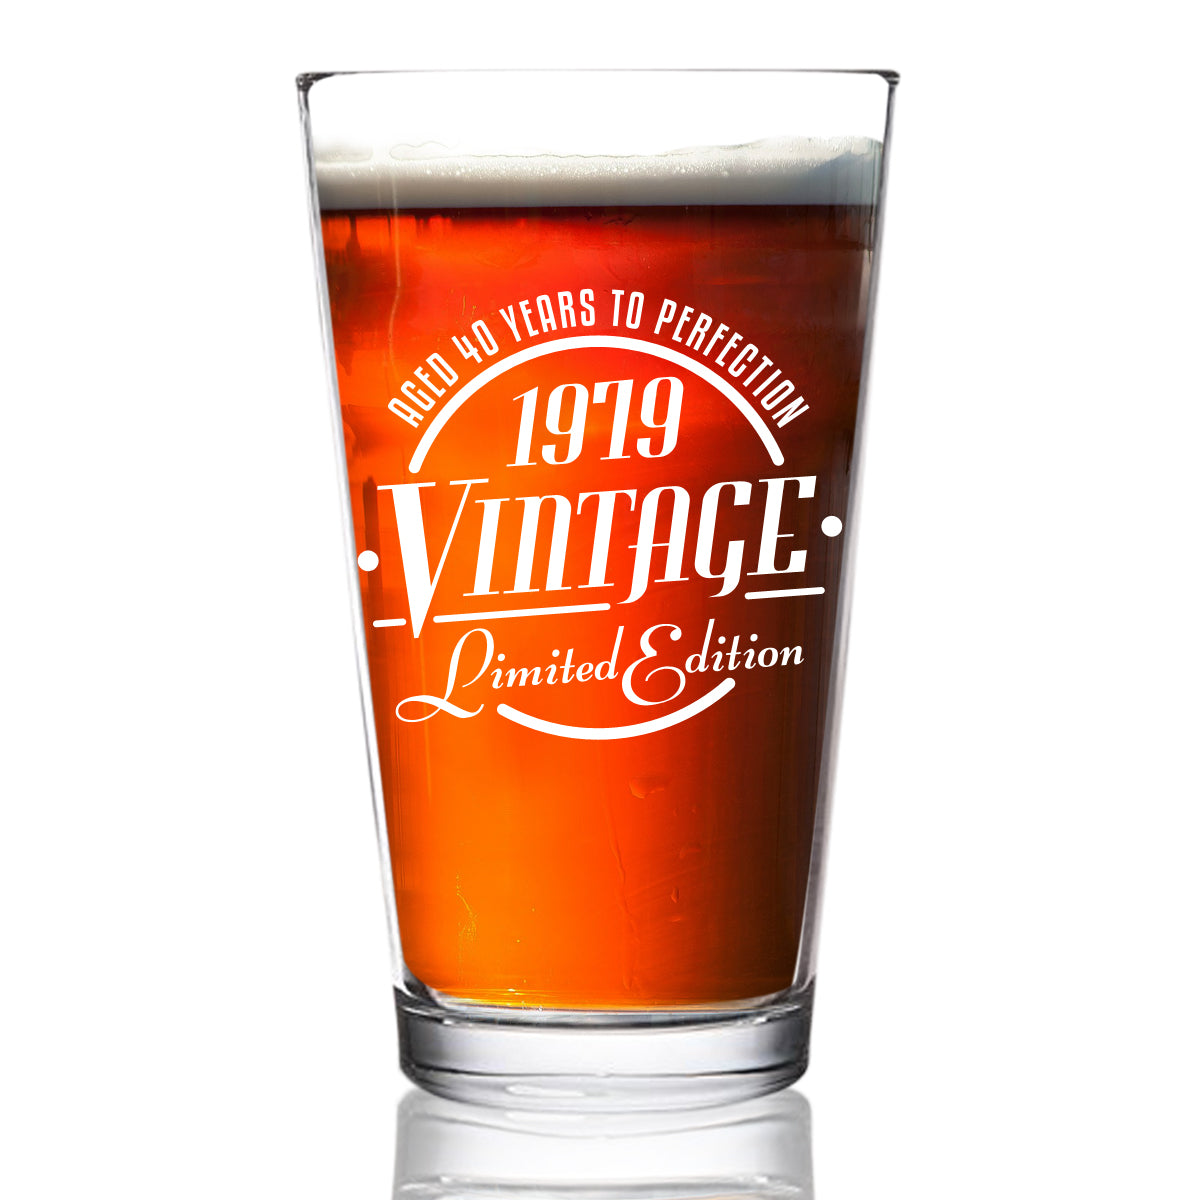 1979 Vintage Edition 40th Birthday Beer Glass for Men and Women (40th Anniversary) 16 oz- Elegant Happy Birthday Pint Beer Glasses for Craft Beer | Classic Birthday Gift, Reunion Gift for Him or Her